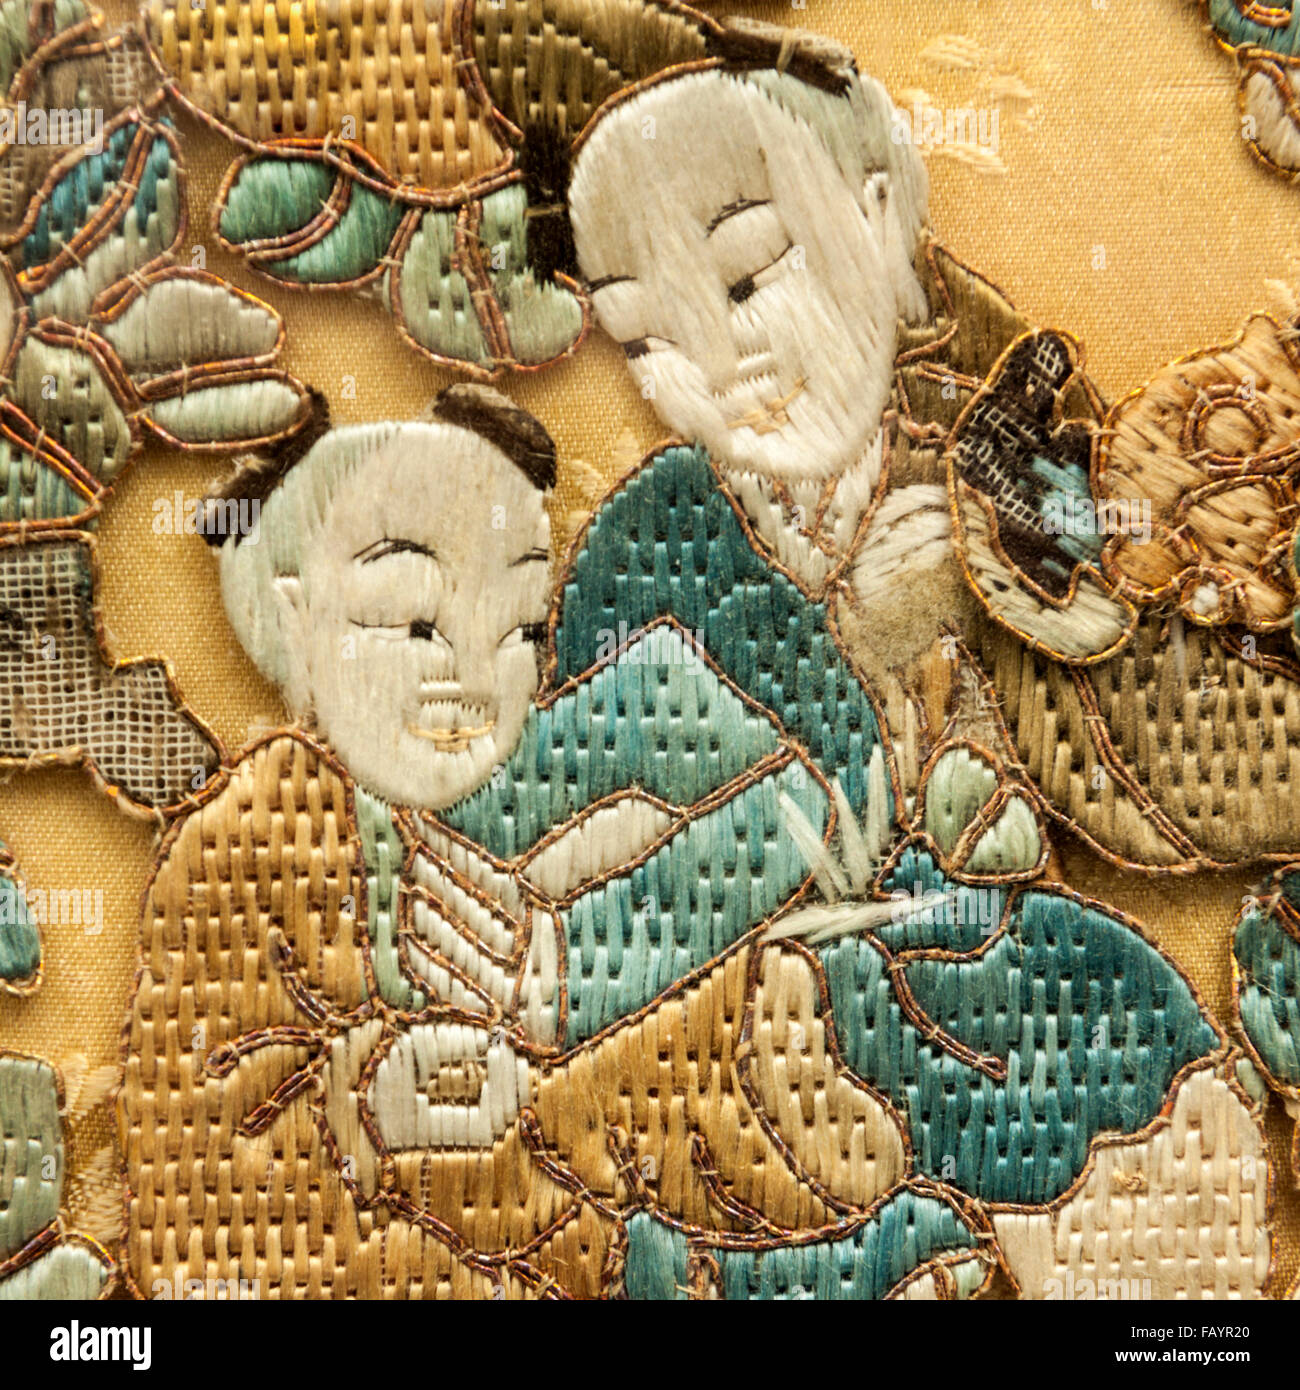 Antique 19th Century Chinese Or Japanese Embroidered Wall Panel Stock Photo Royalty Free Image